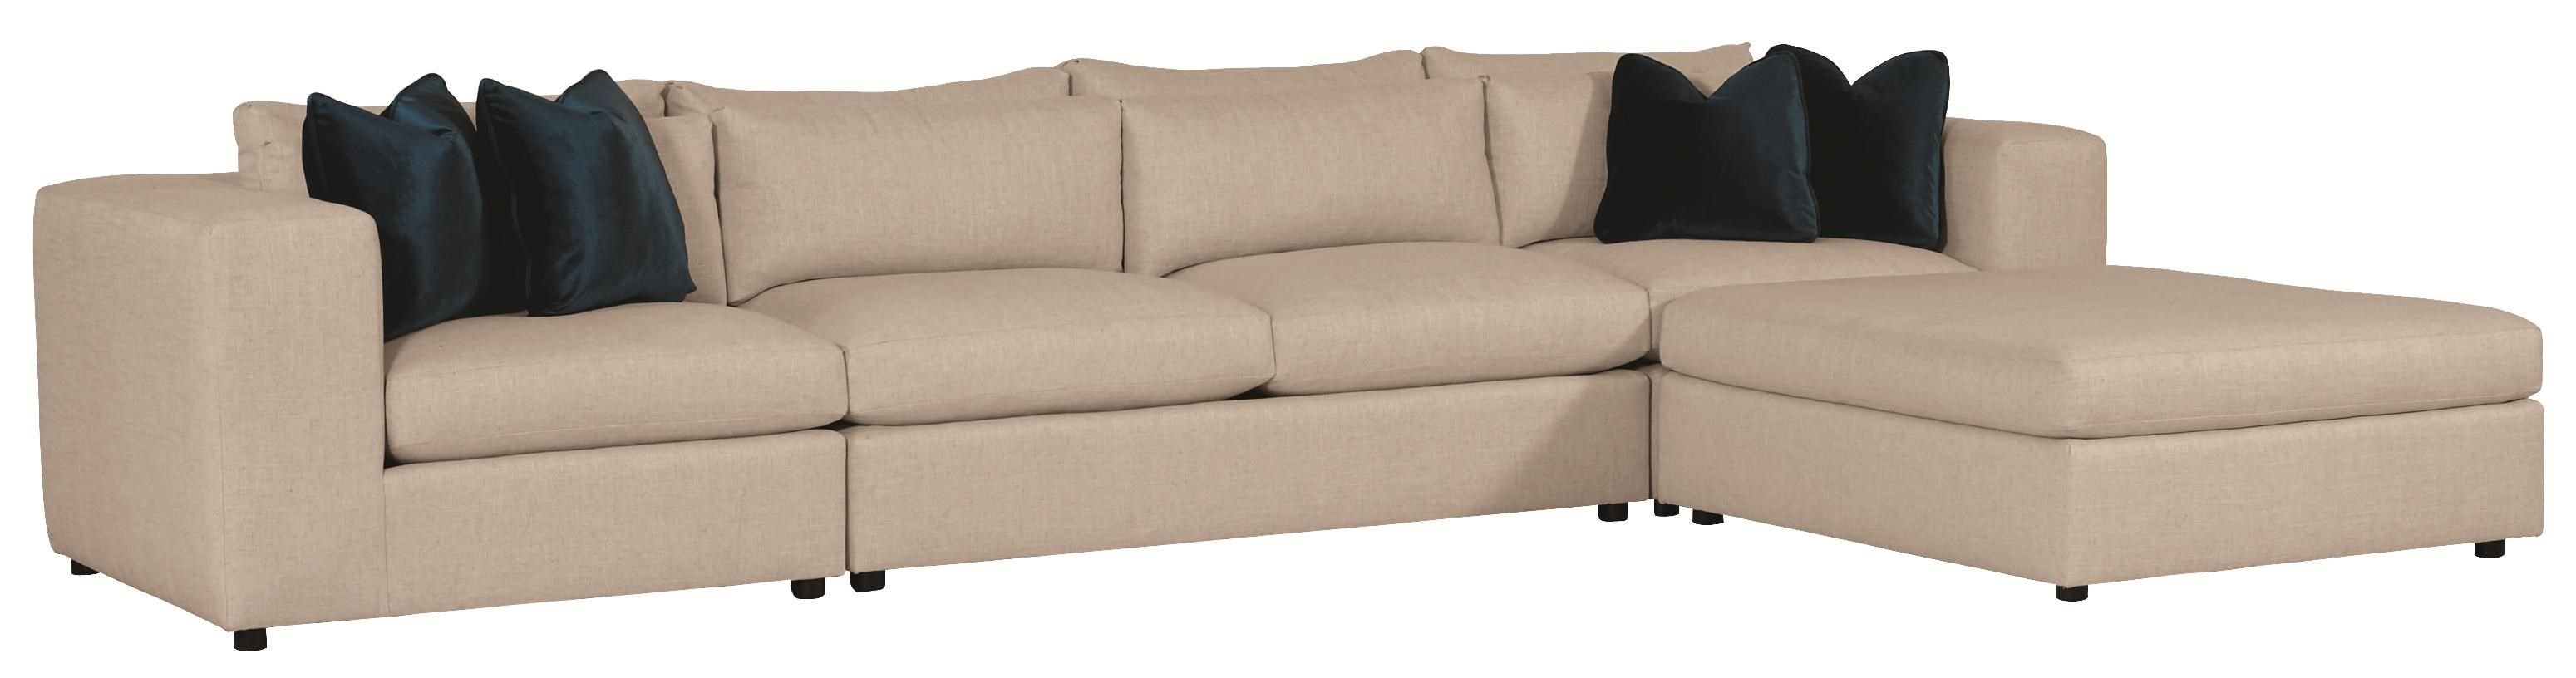 Bernhardt Como Sectional Sofa ...